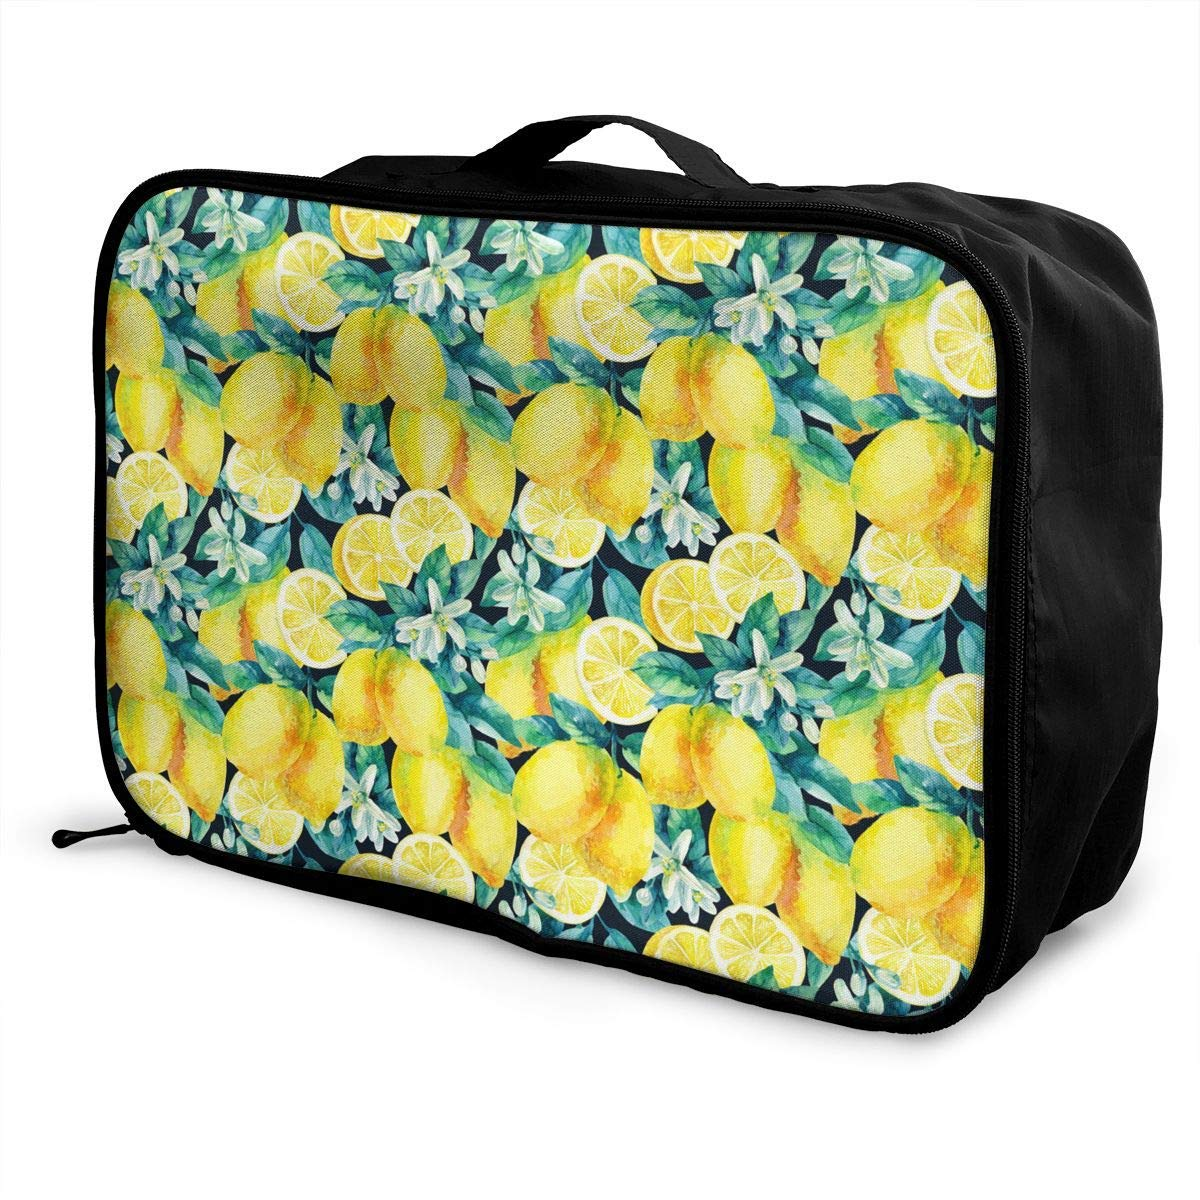 Portable Luggage Duffel Bag Watercolor Lemon Fruit Branch Leaves Pattern Travel Bags Carry-on In Trolley Handle